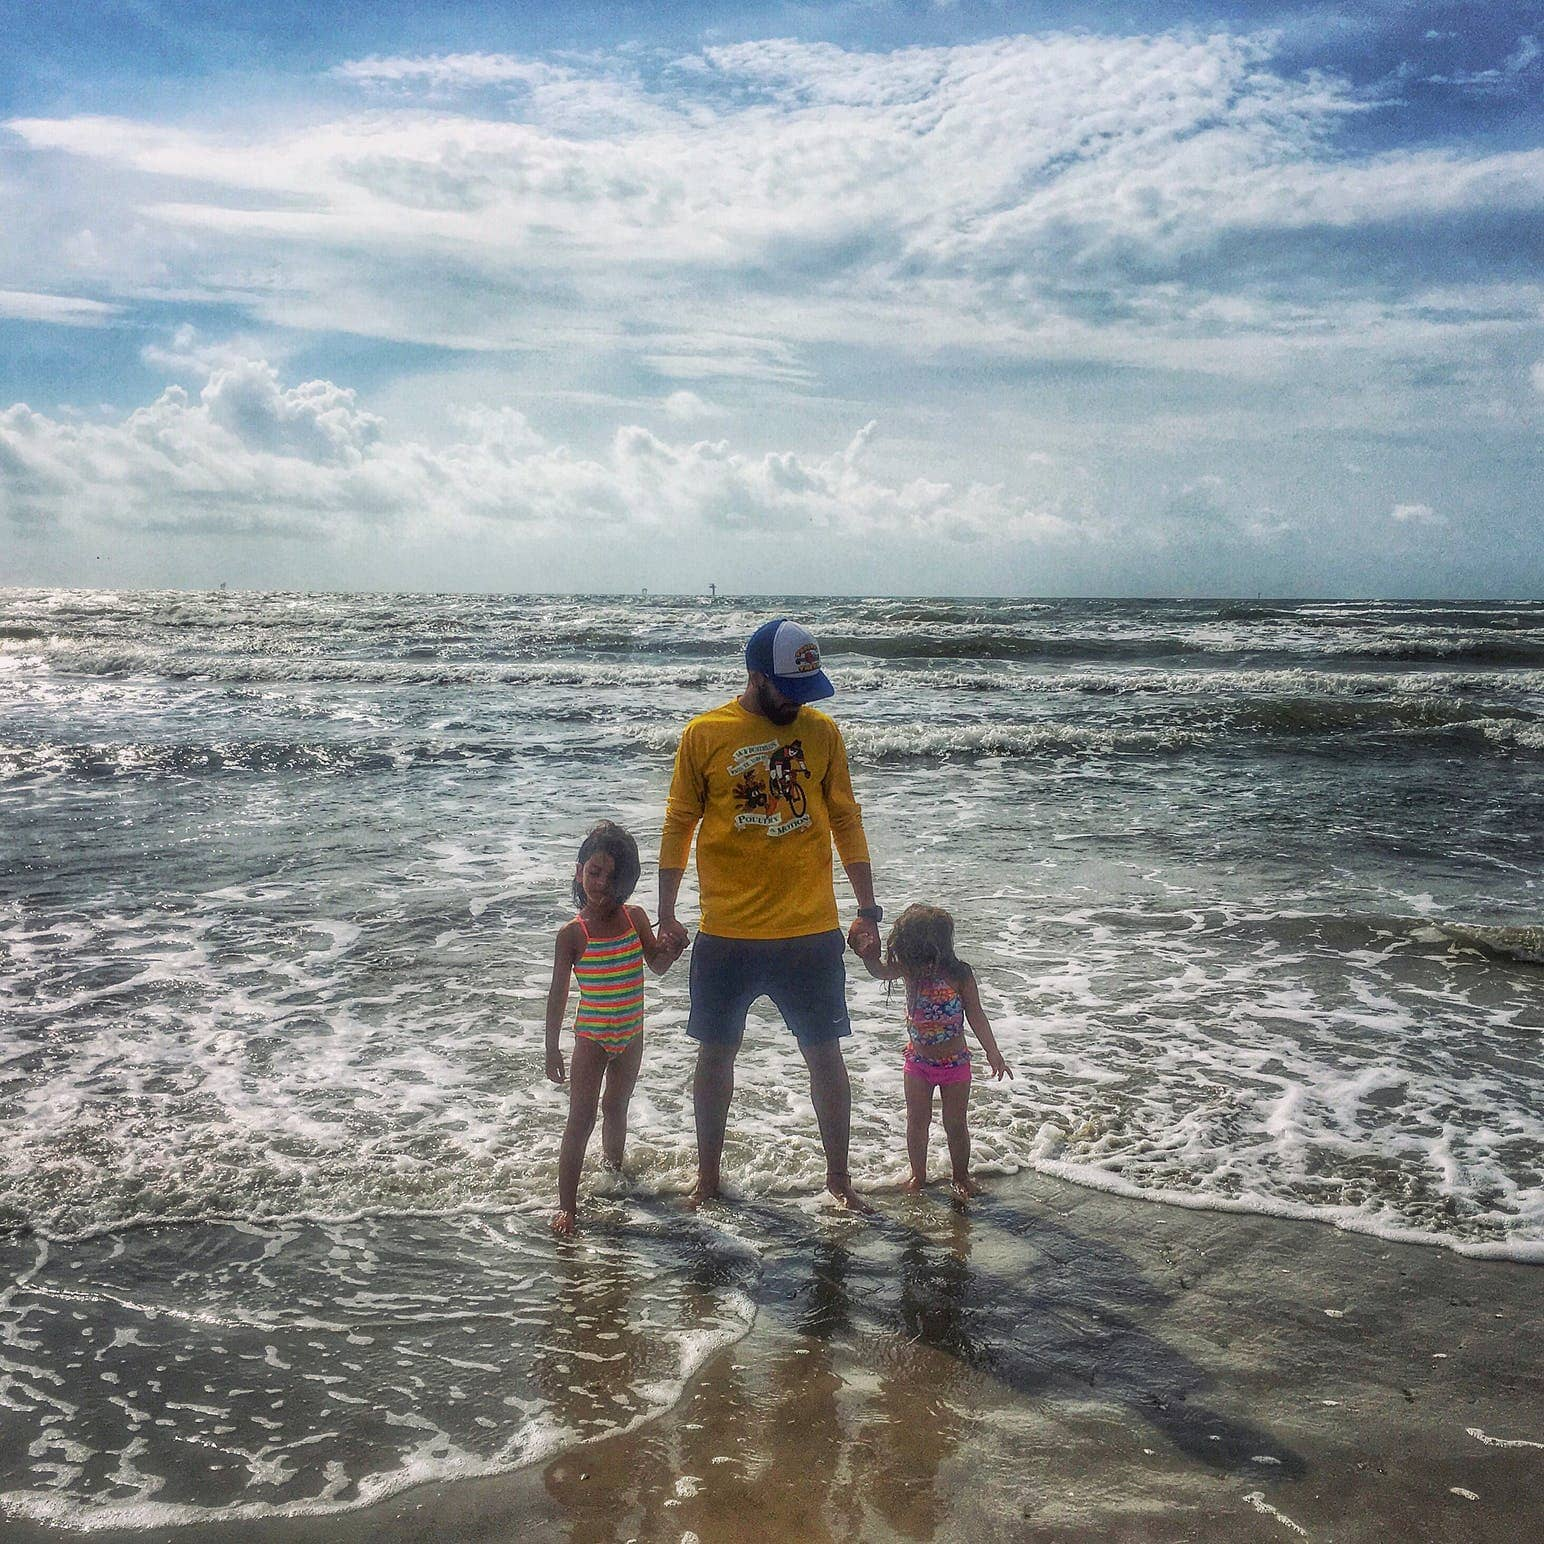 Two young girls holding their dads hands while wading through the beach on a sunny day.